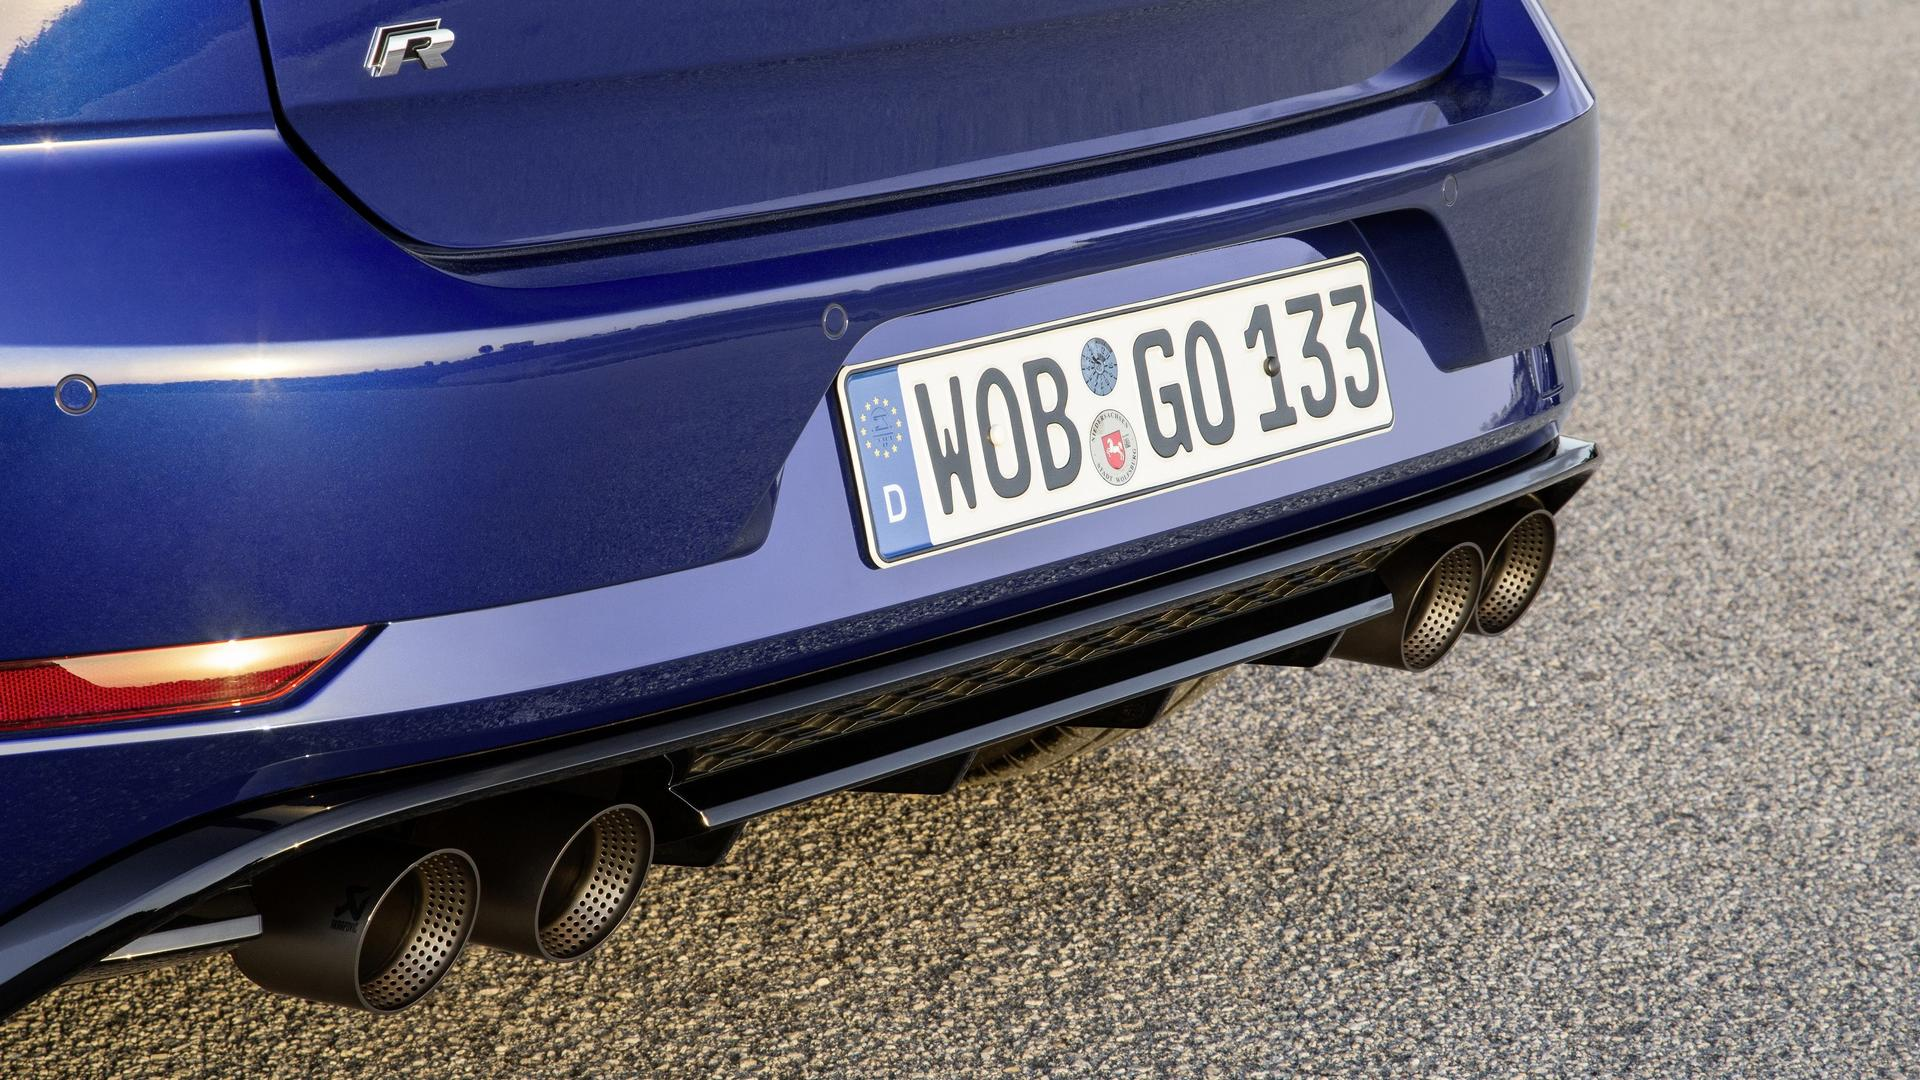 vw golf r performance pack has akrapovic exhaust lighter. Black Bedroom Furniture Sets. Home Design Ideas